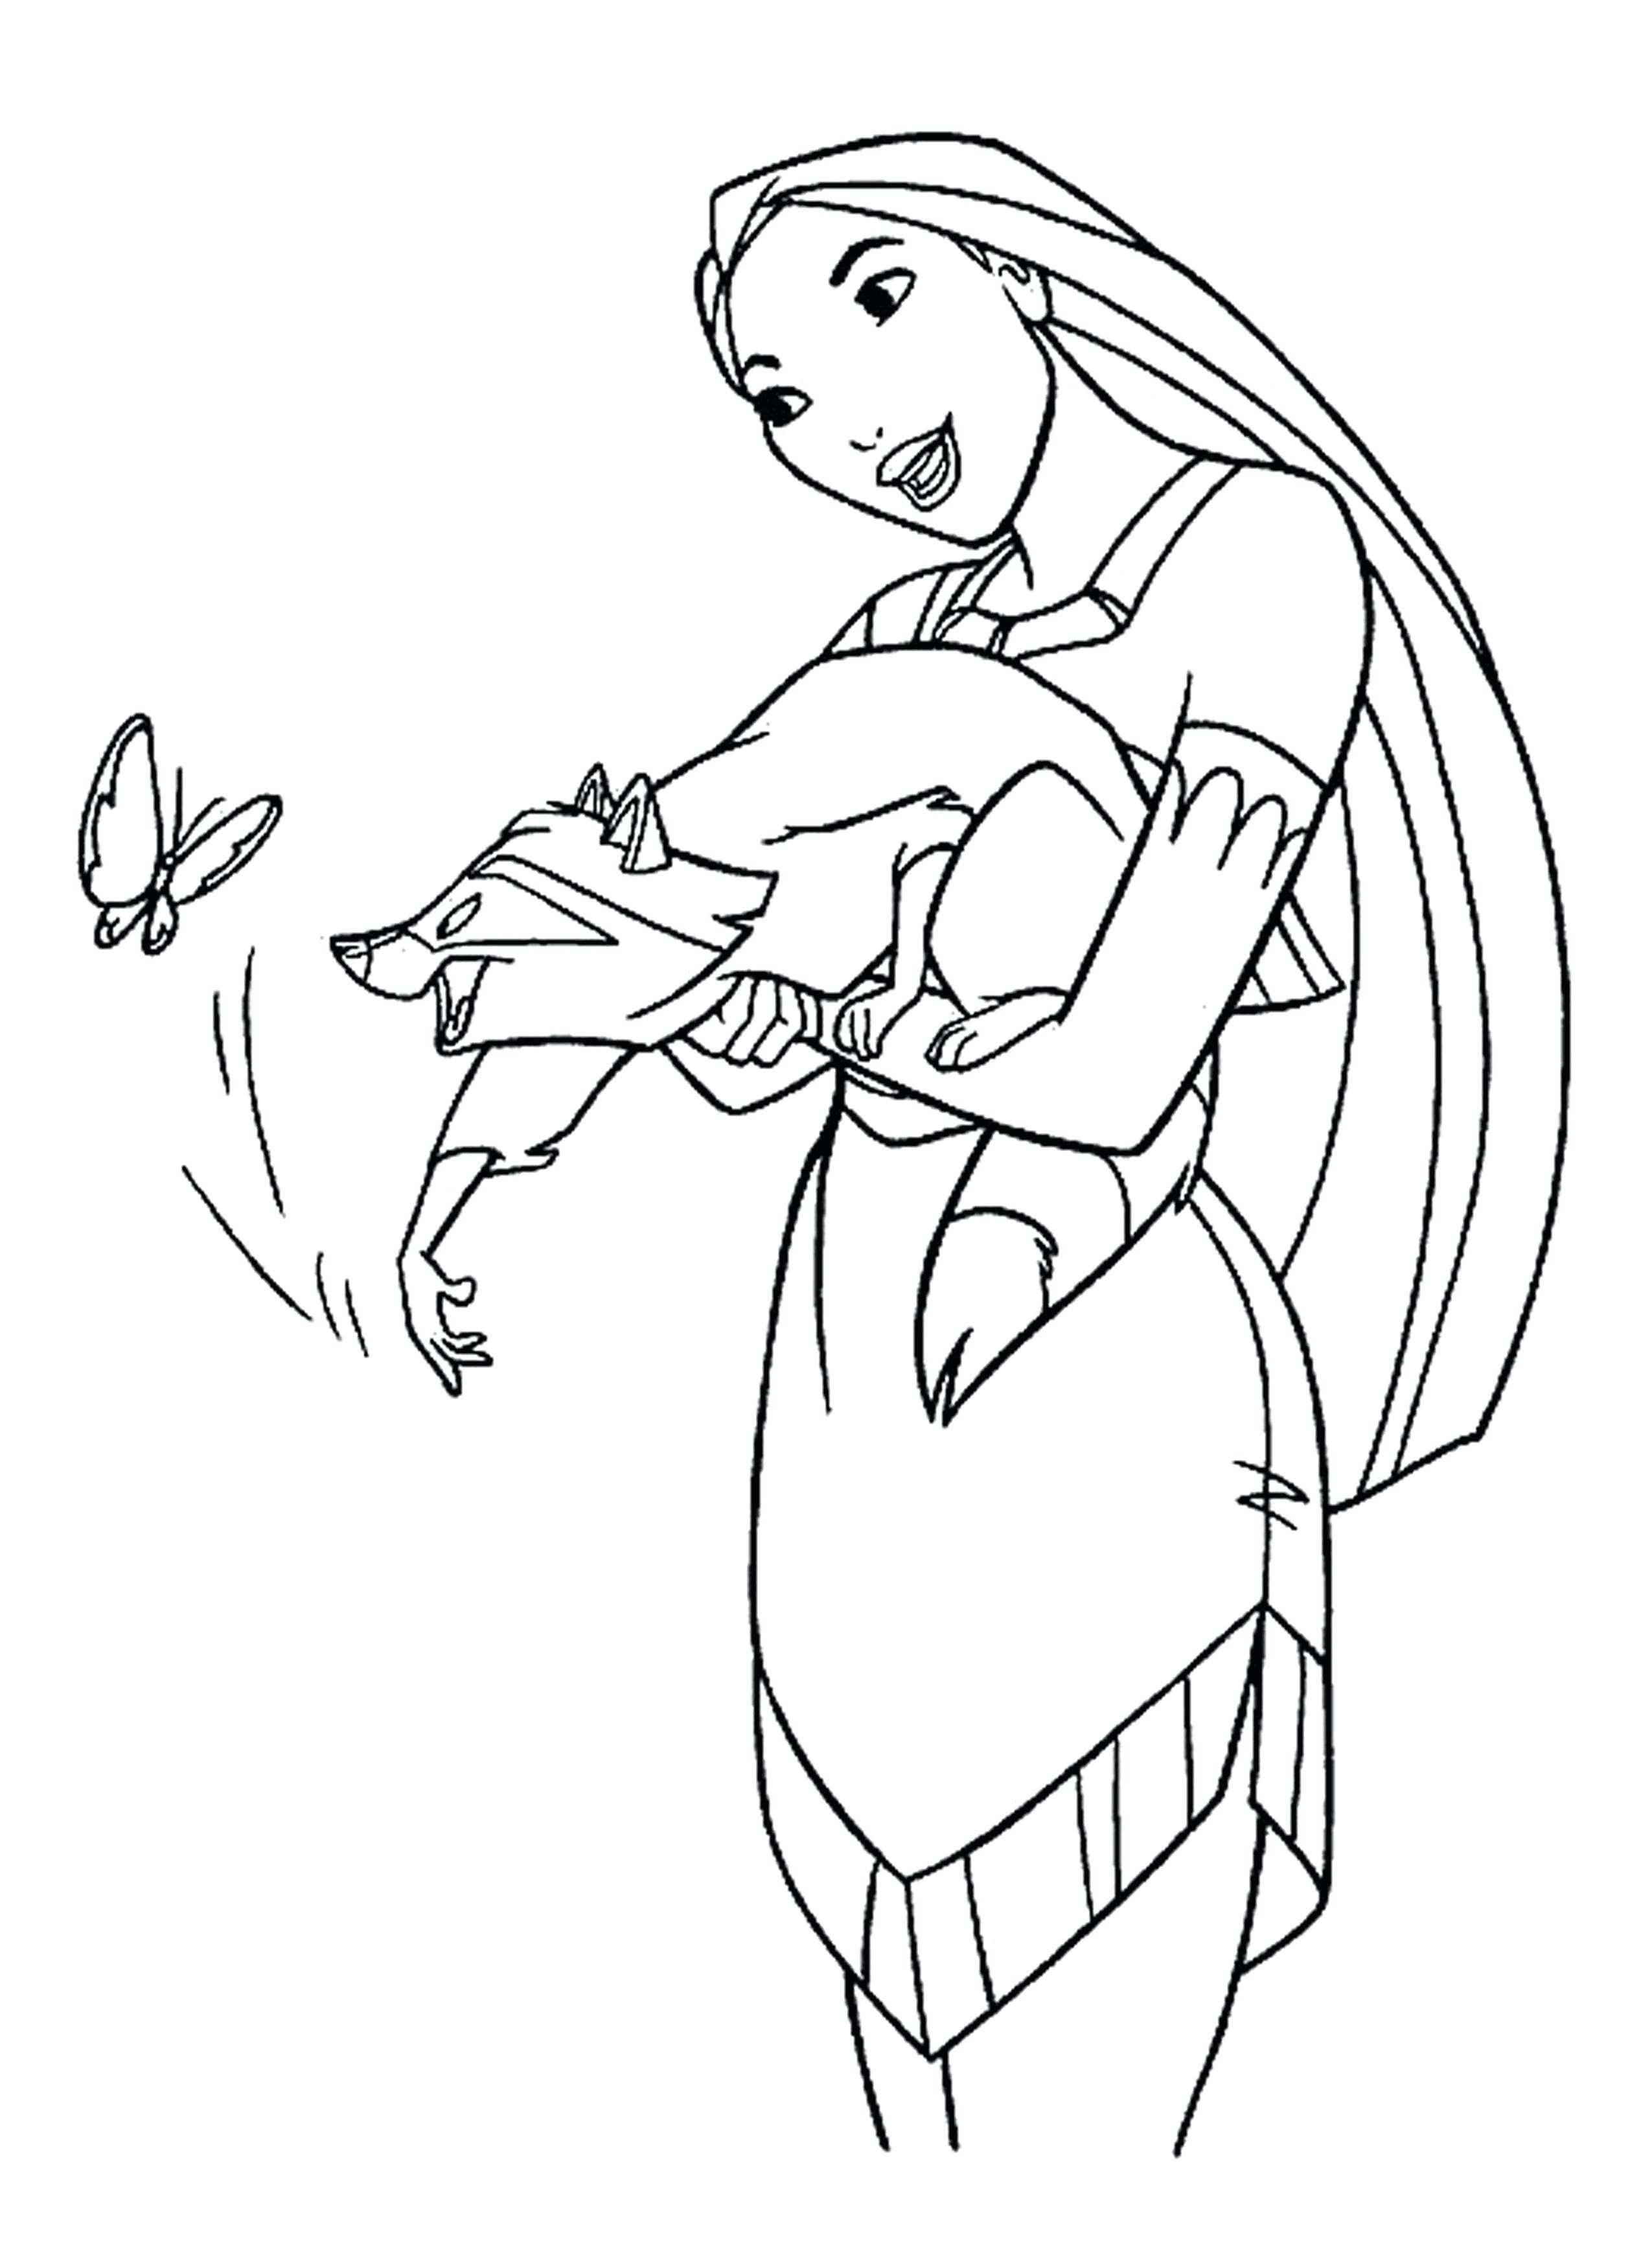 Pocahontas And John Smith Coloring Pages At Getcolorings